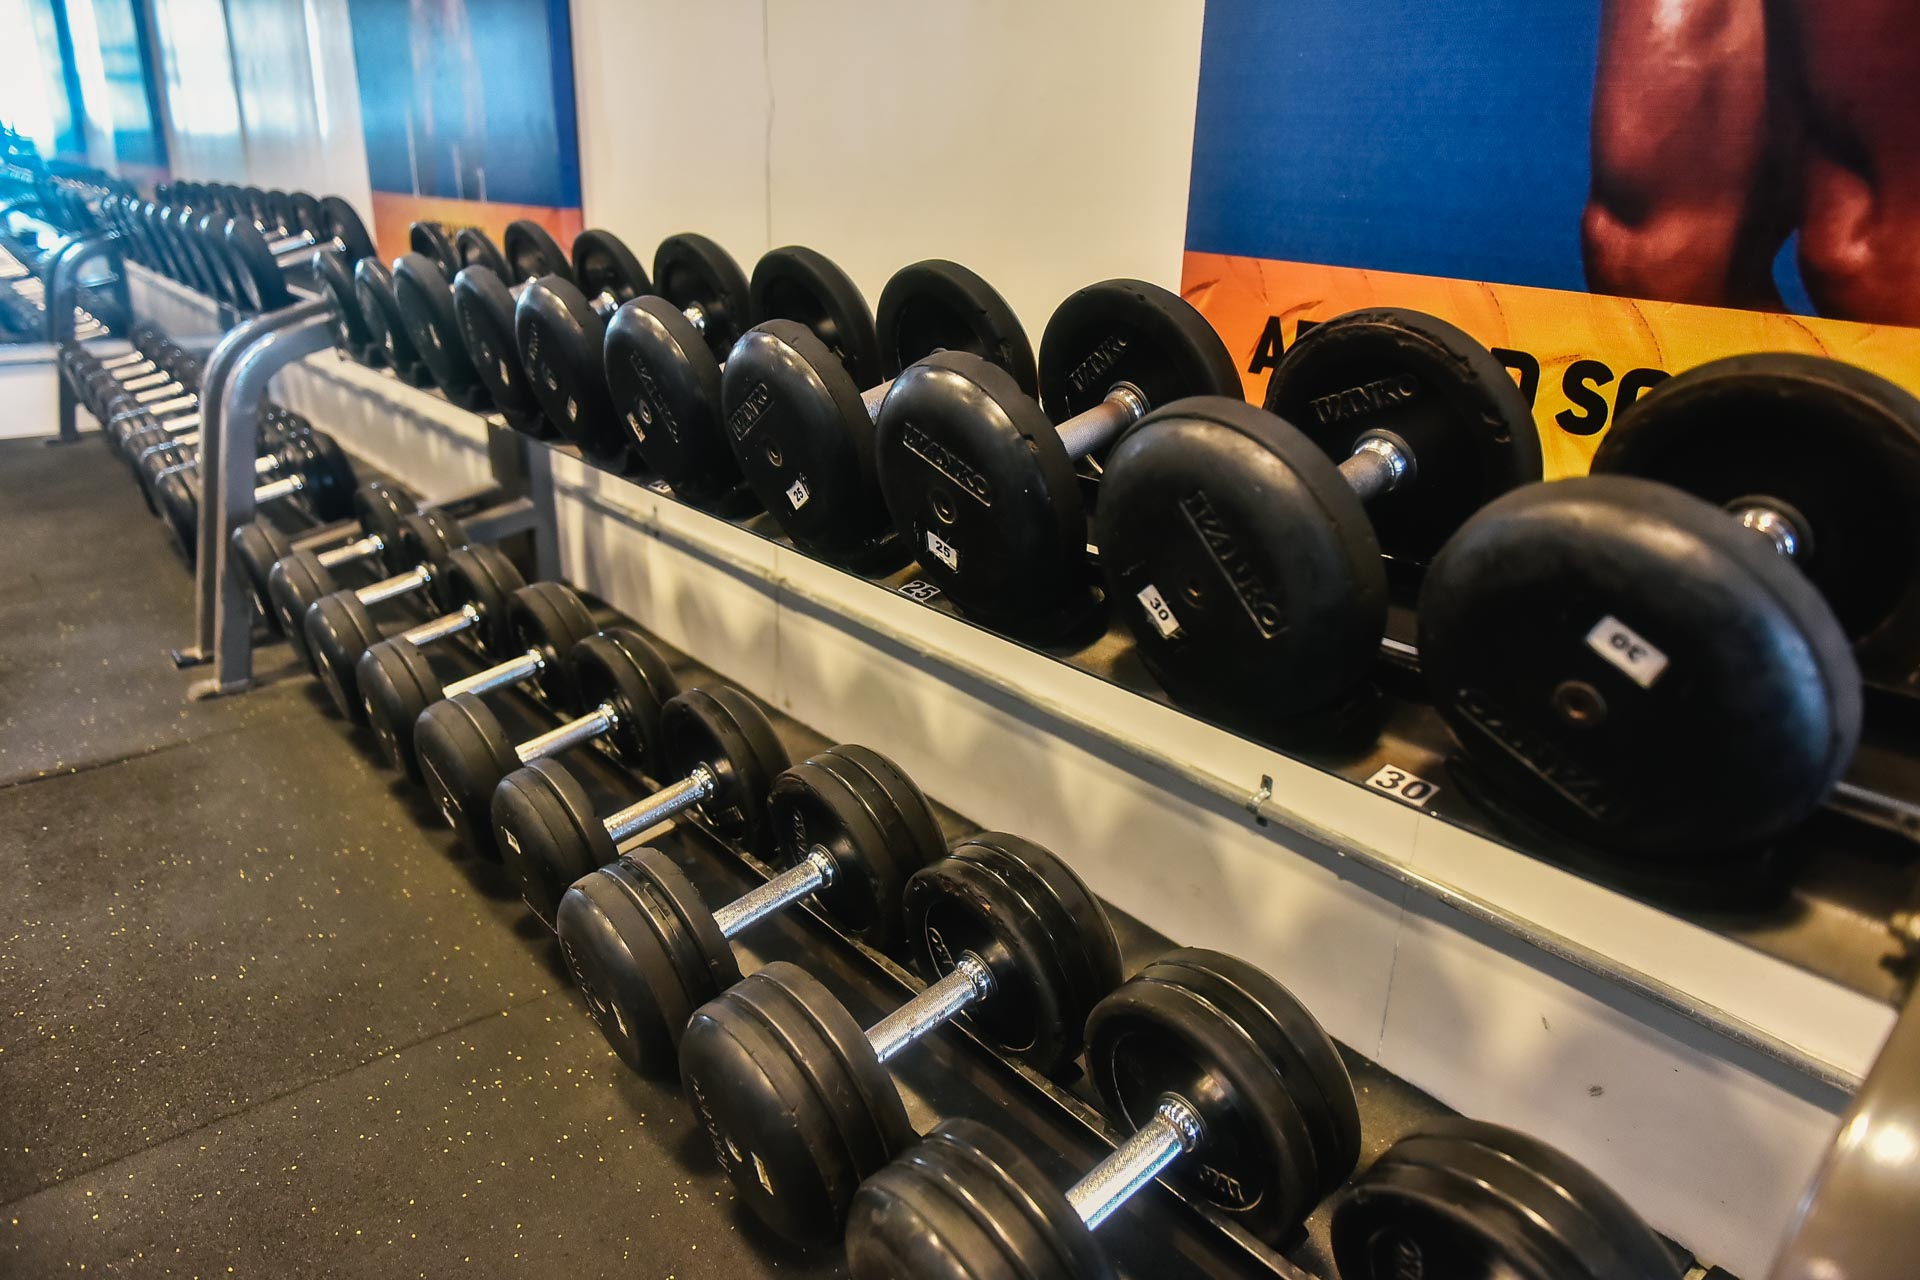 Fitness Stores That Can Deliver Gym Equipment To Your Home